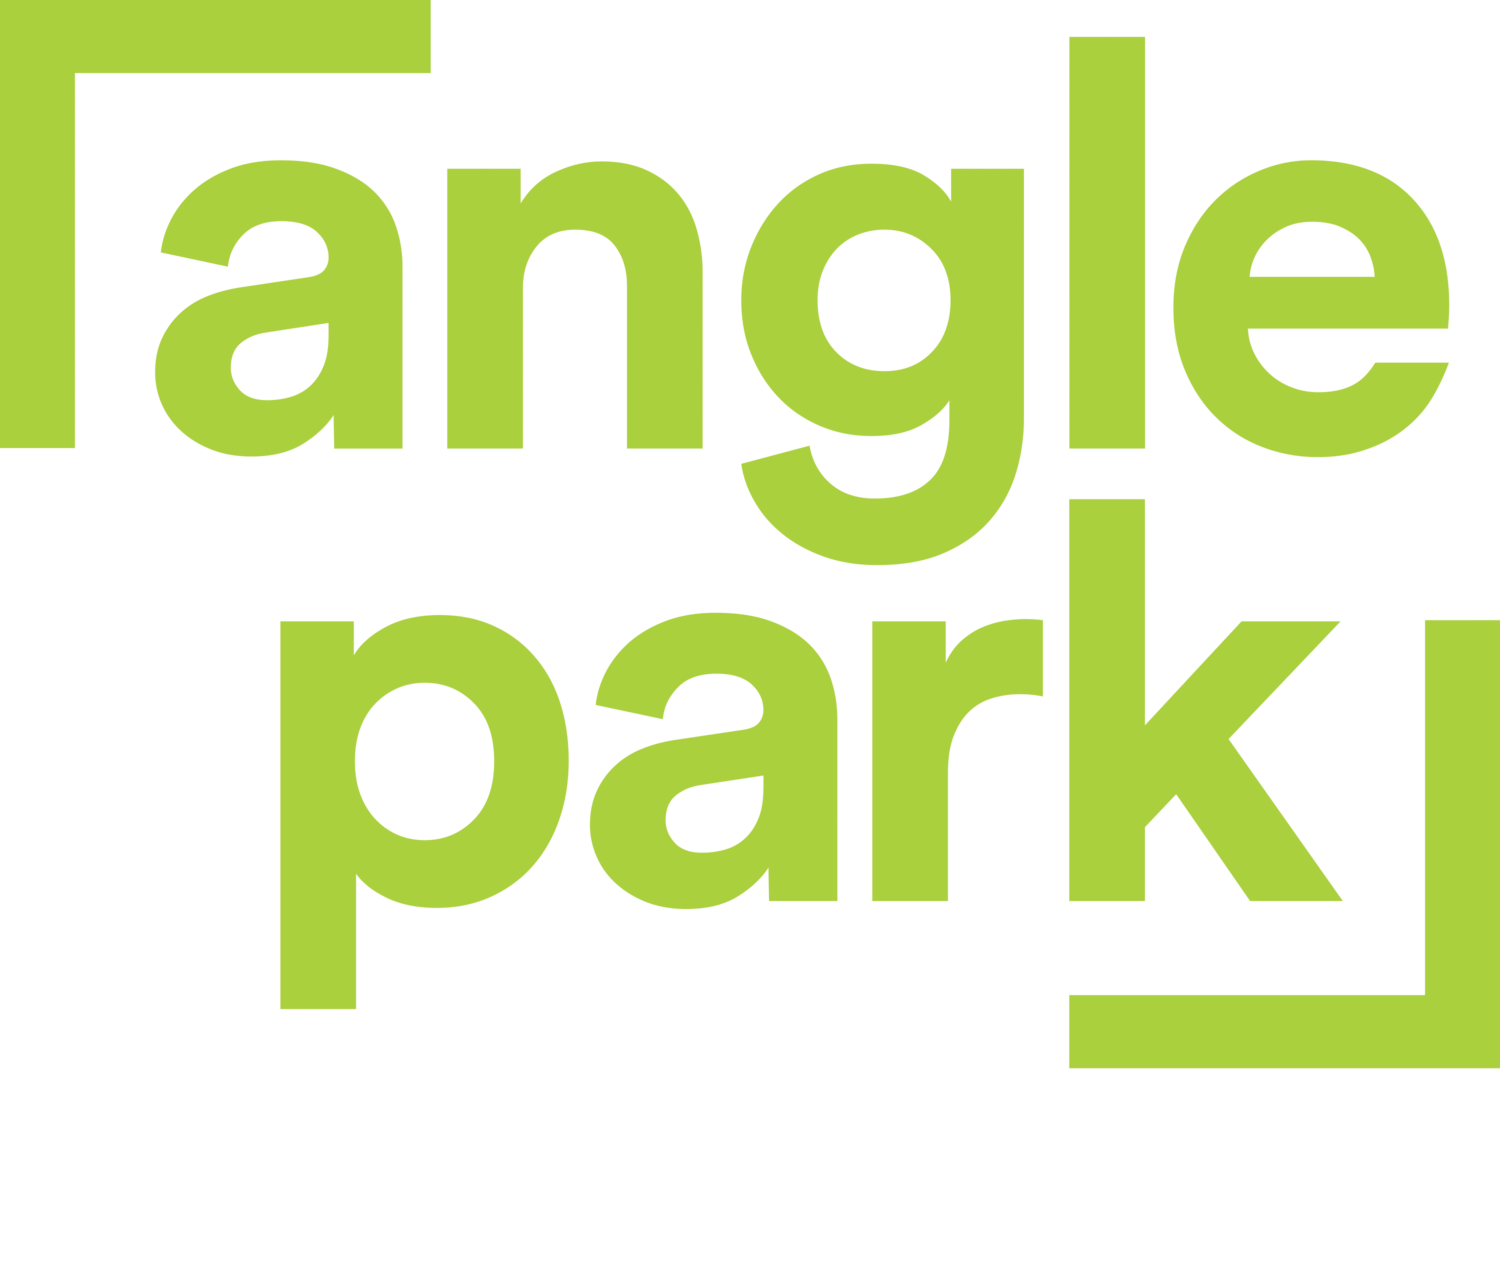 Angle Park, Inc. - Media and A/V Installations for Museum Exhibits and Experiential Spaces